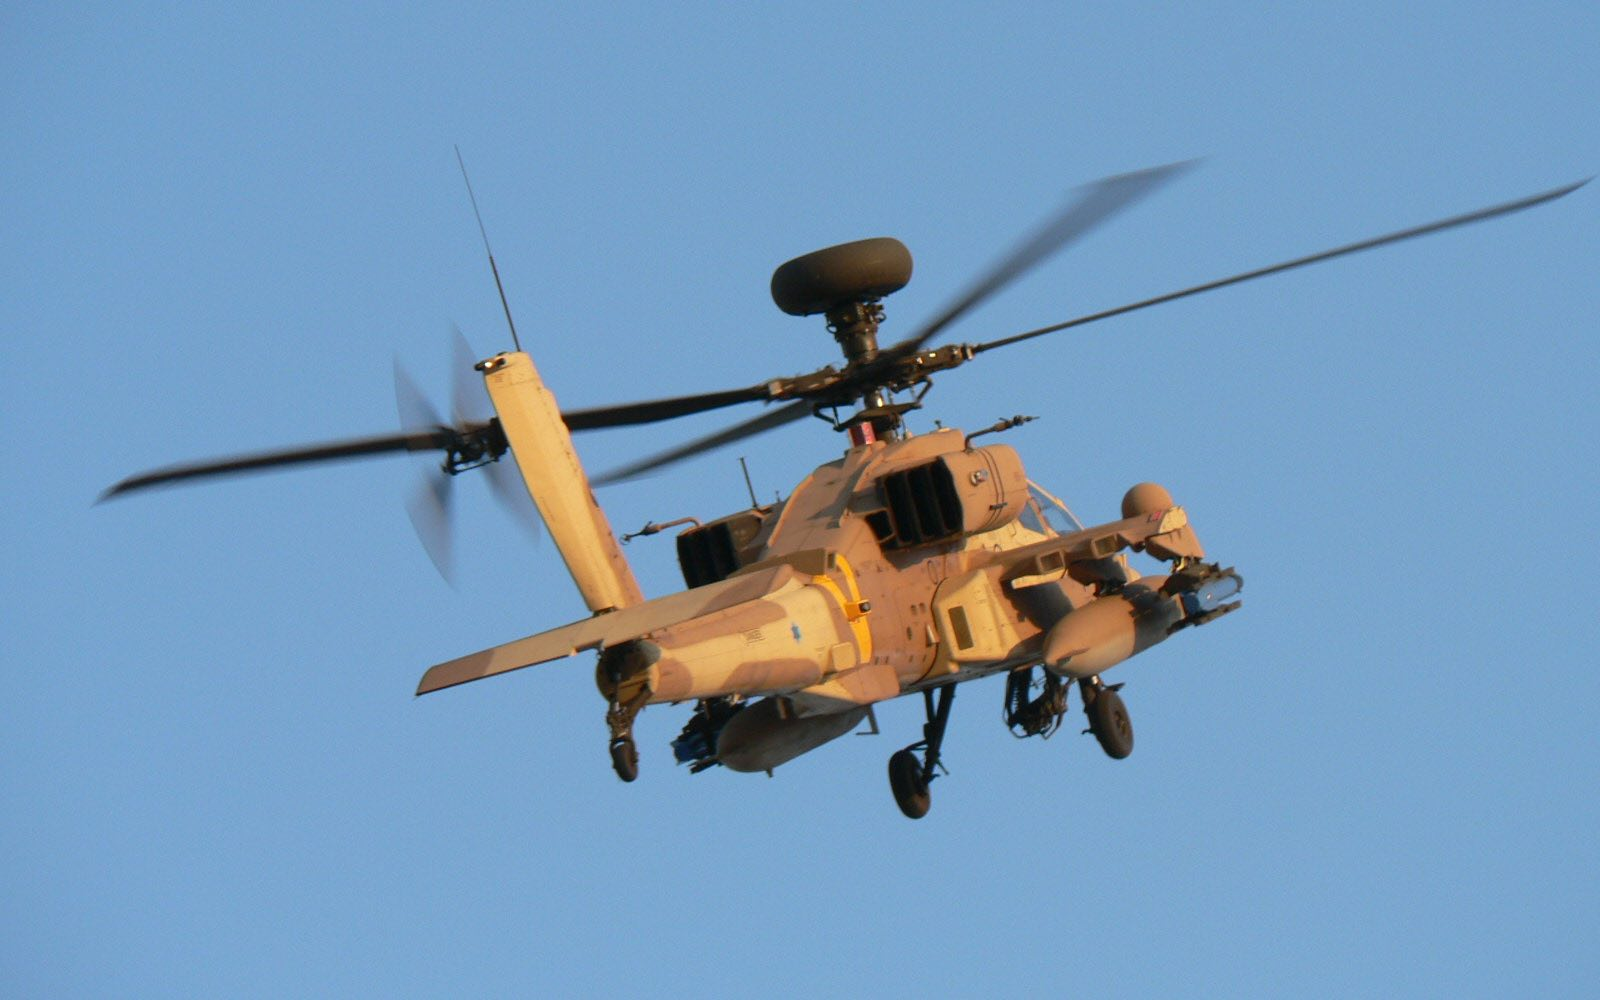 An Israeli Air Force Apache helicopter (Photo: Galit/Flickr)